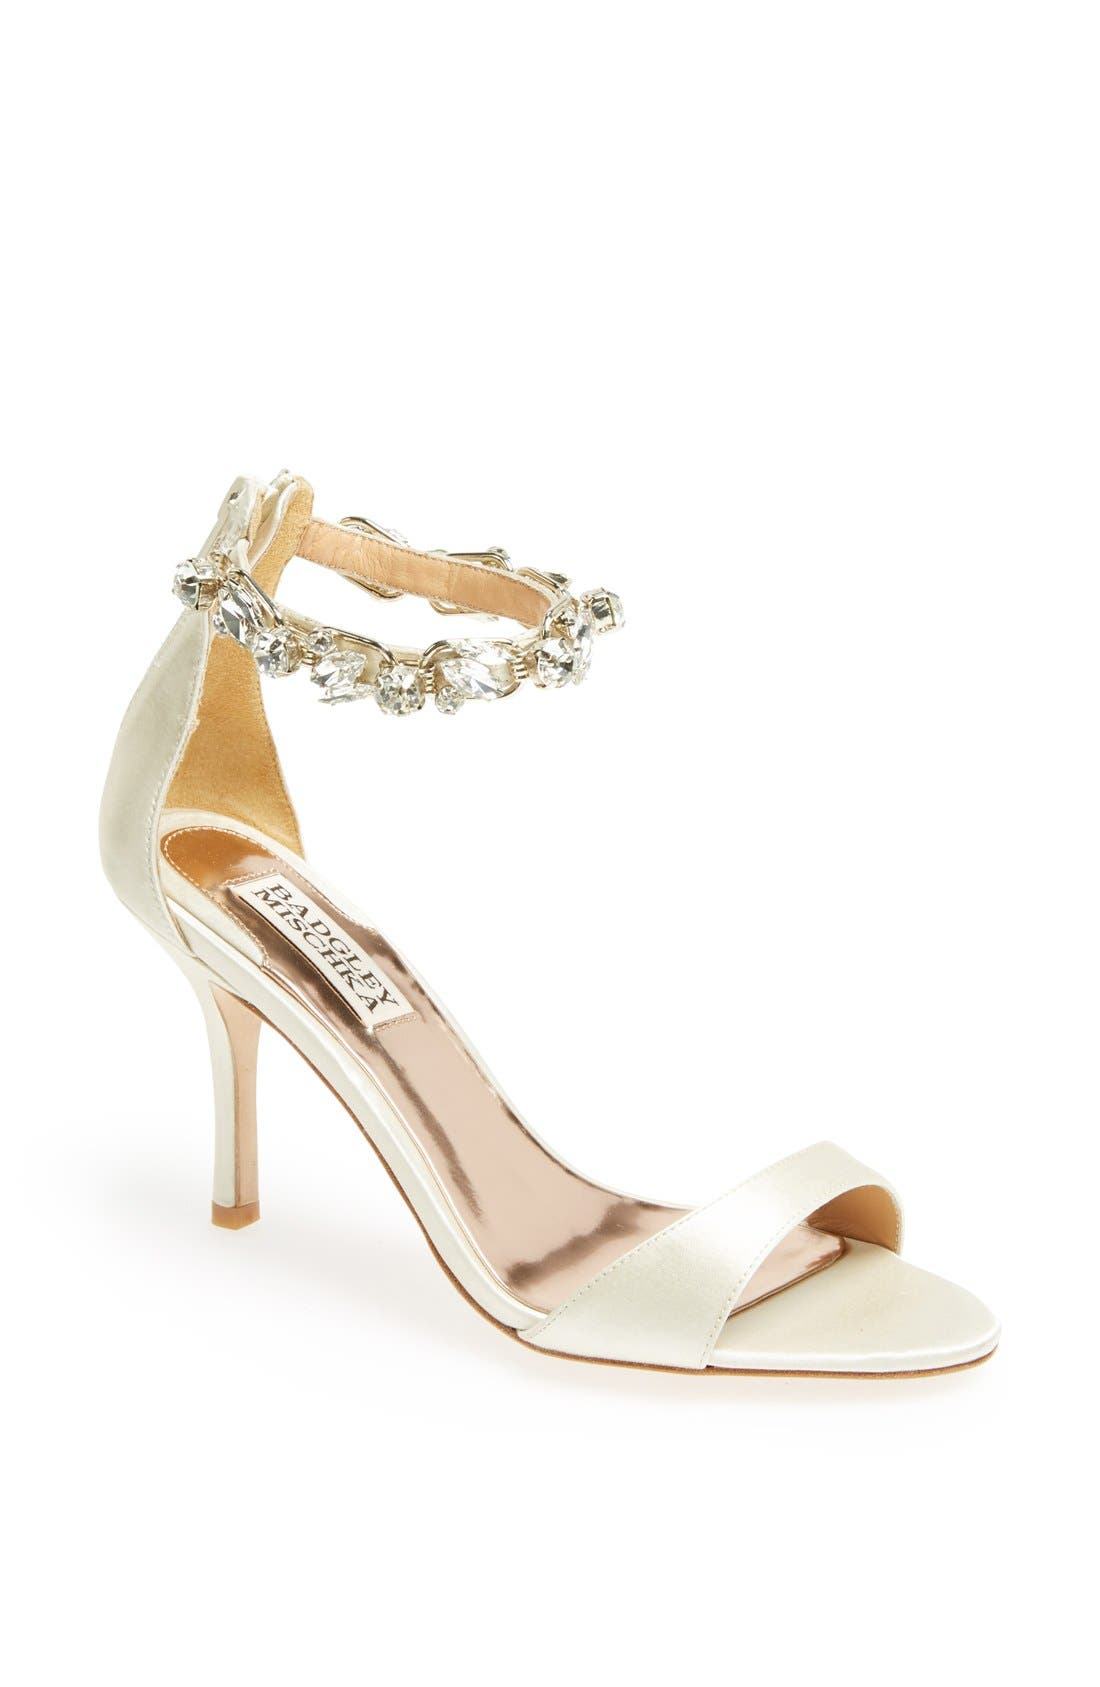 Alternate Image 1 Selected - Badgley Mischka 'Klark' Satin Sandal